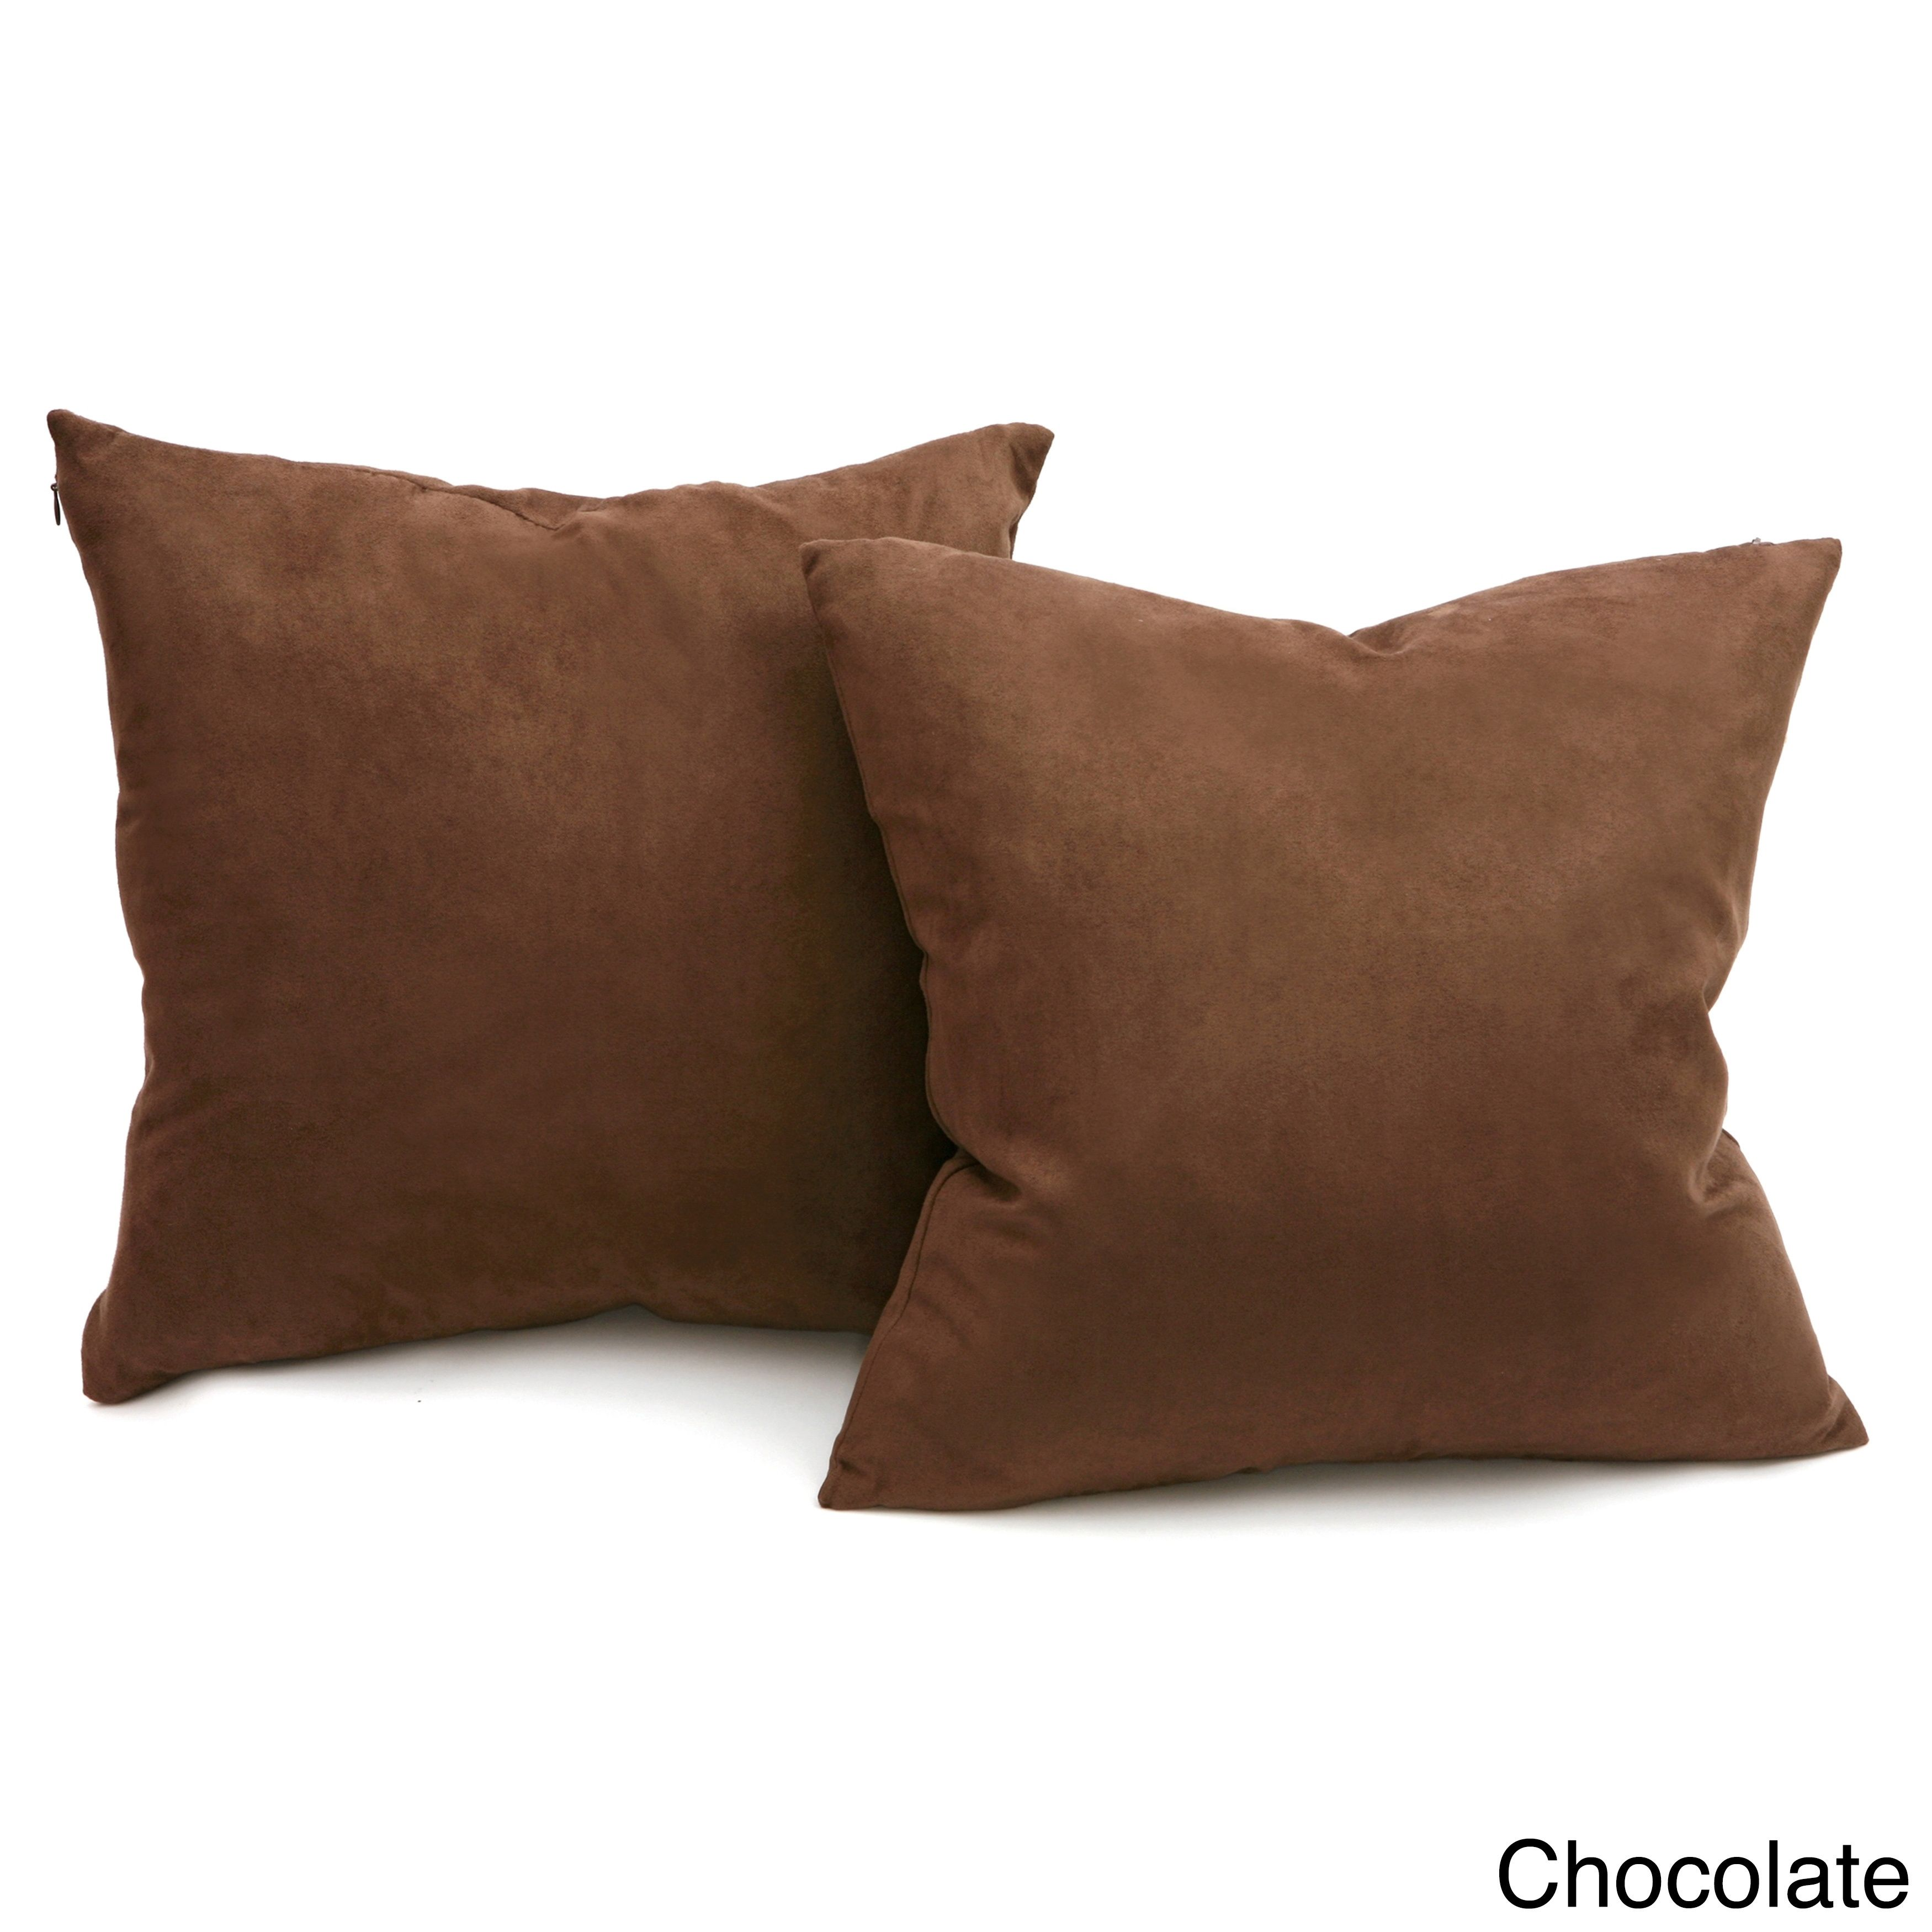 sofa image for fantastic decor interioresign floor accent schools bedroom york new design best excerpt ideas onlineefinition decorative throw couch leather stylish living school top room color pillows interior brown classes of colorful